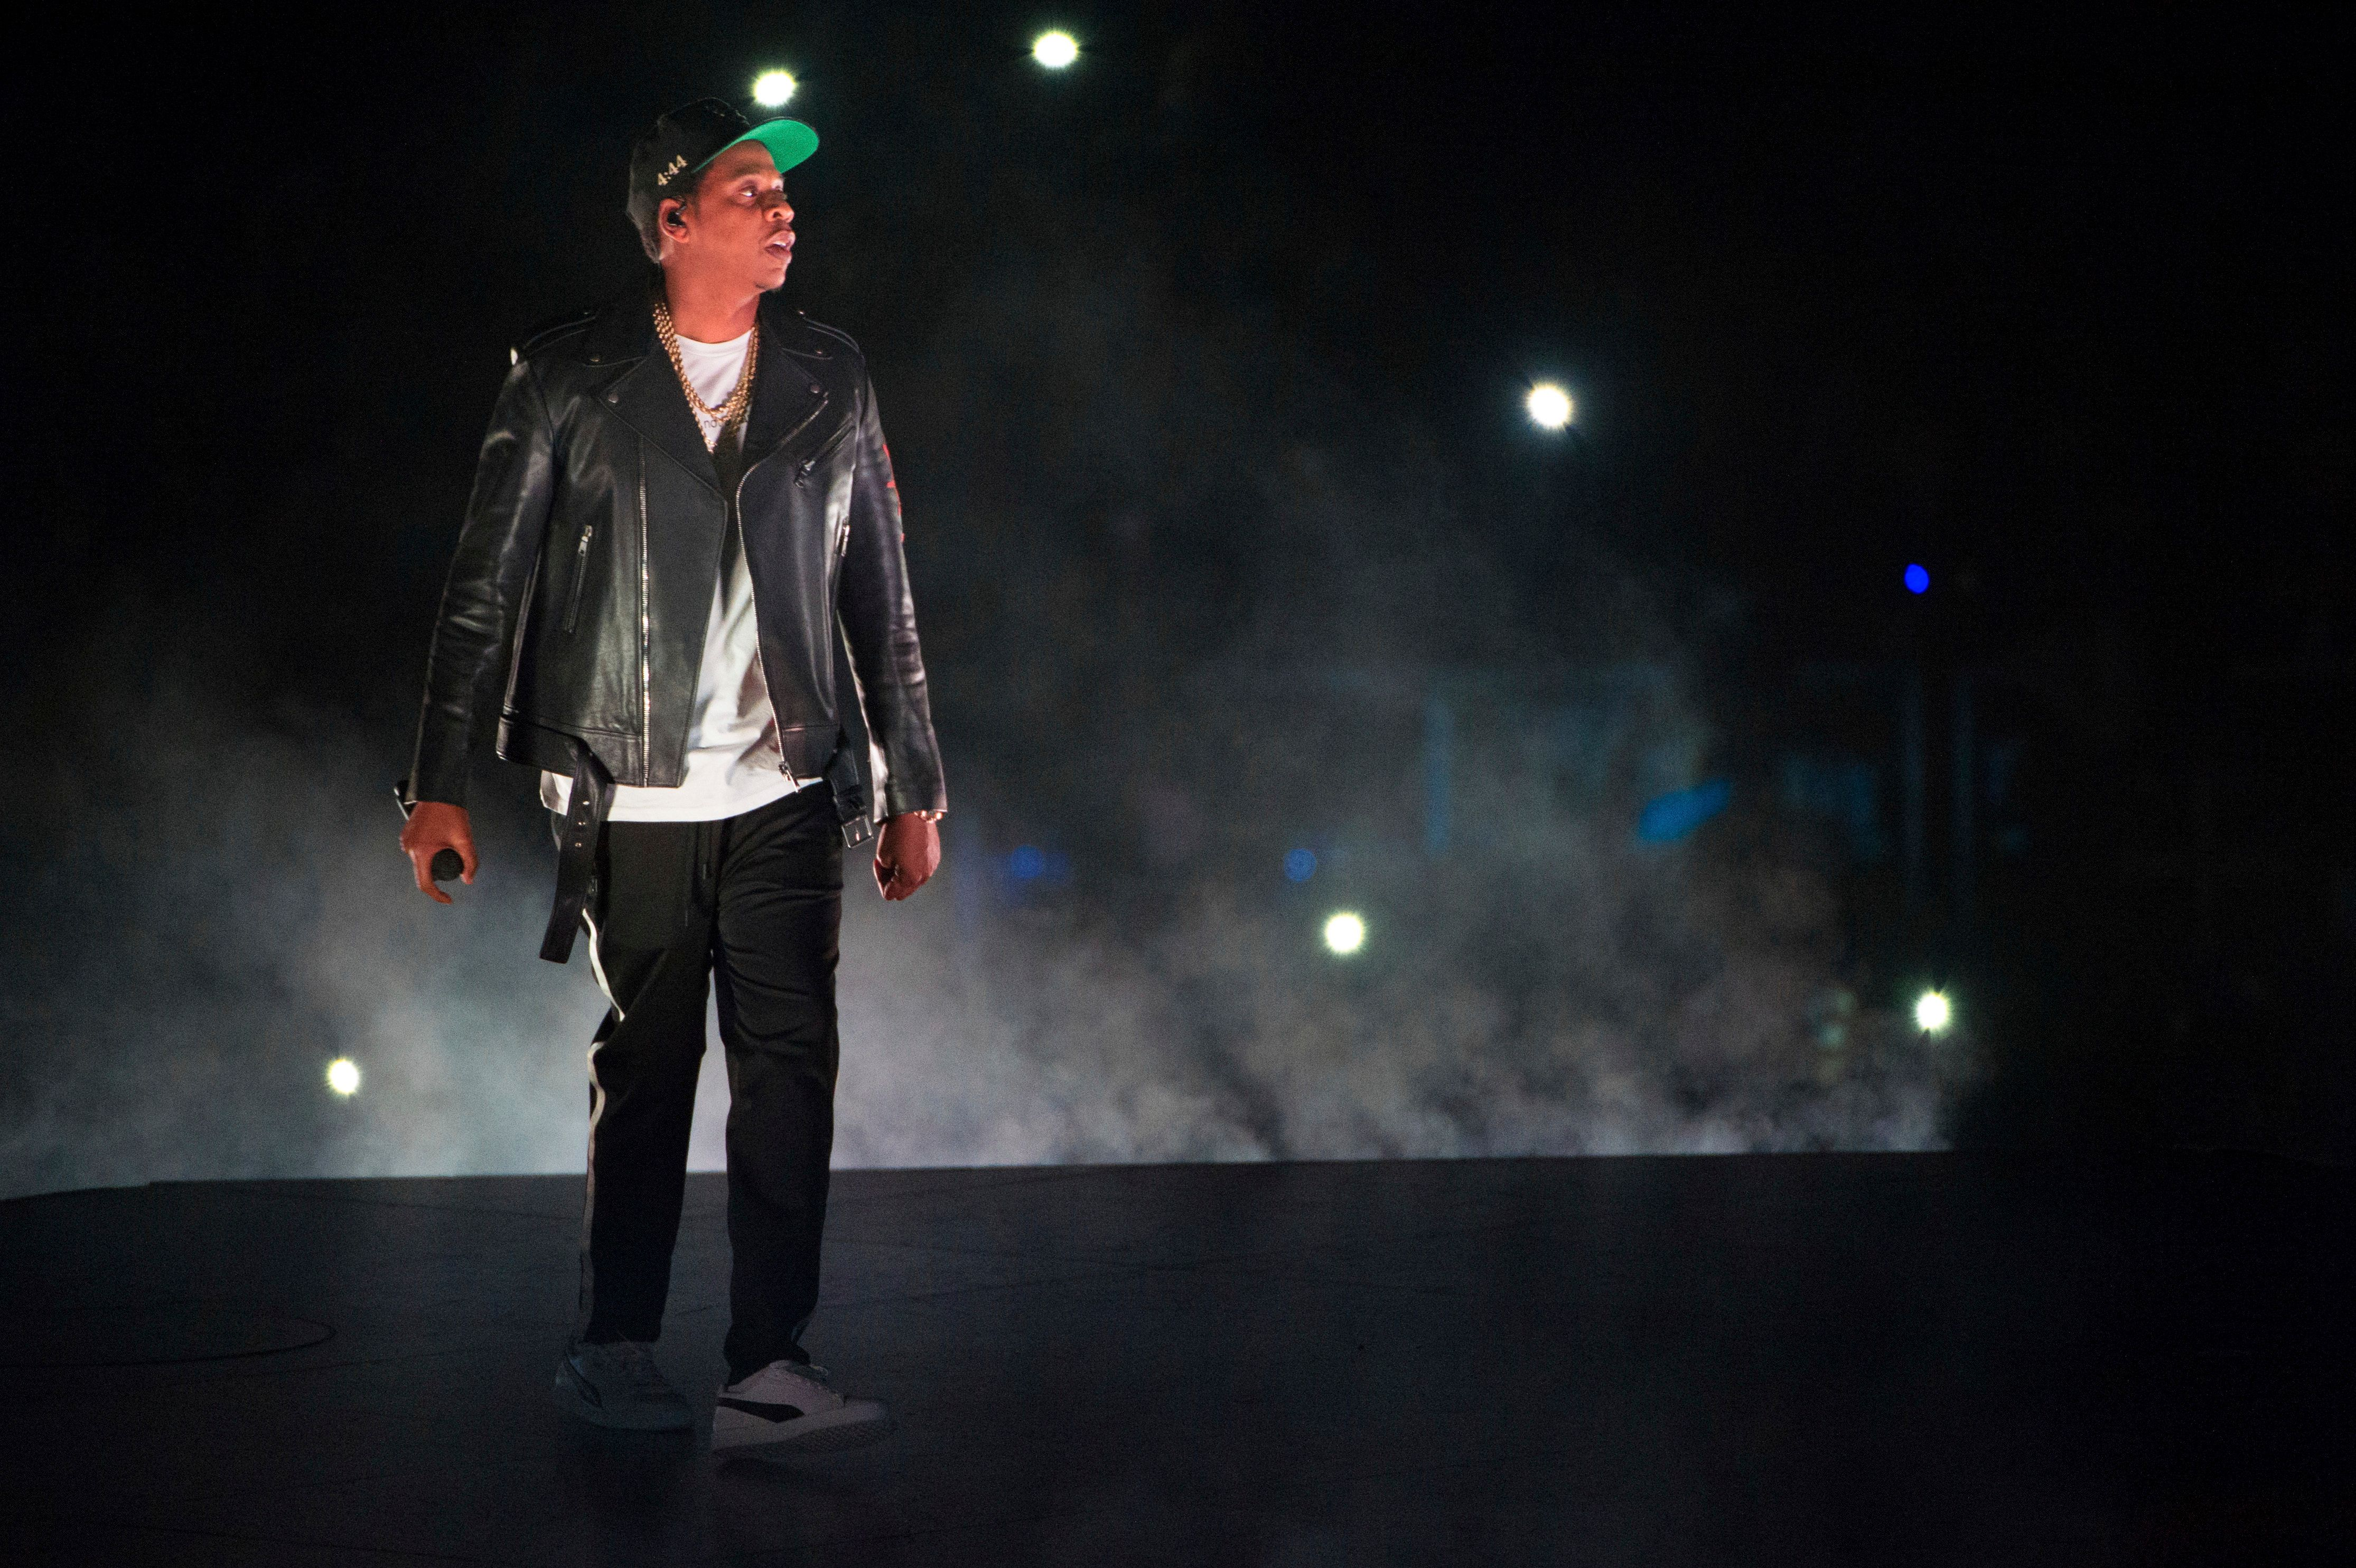 Jay-Z performs on the 4:44 Tour at Barclays Center on Sunday, Nov. 26, 2017, in Brooklyn, New York. (Photo by Scott Roth/Invision/AP)